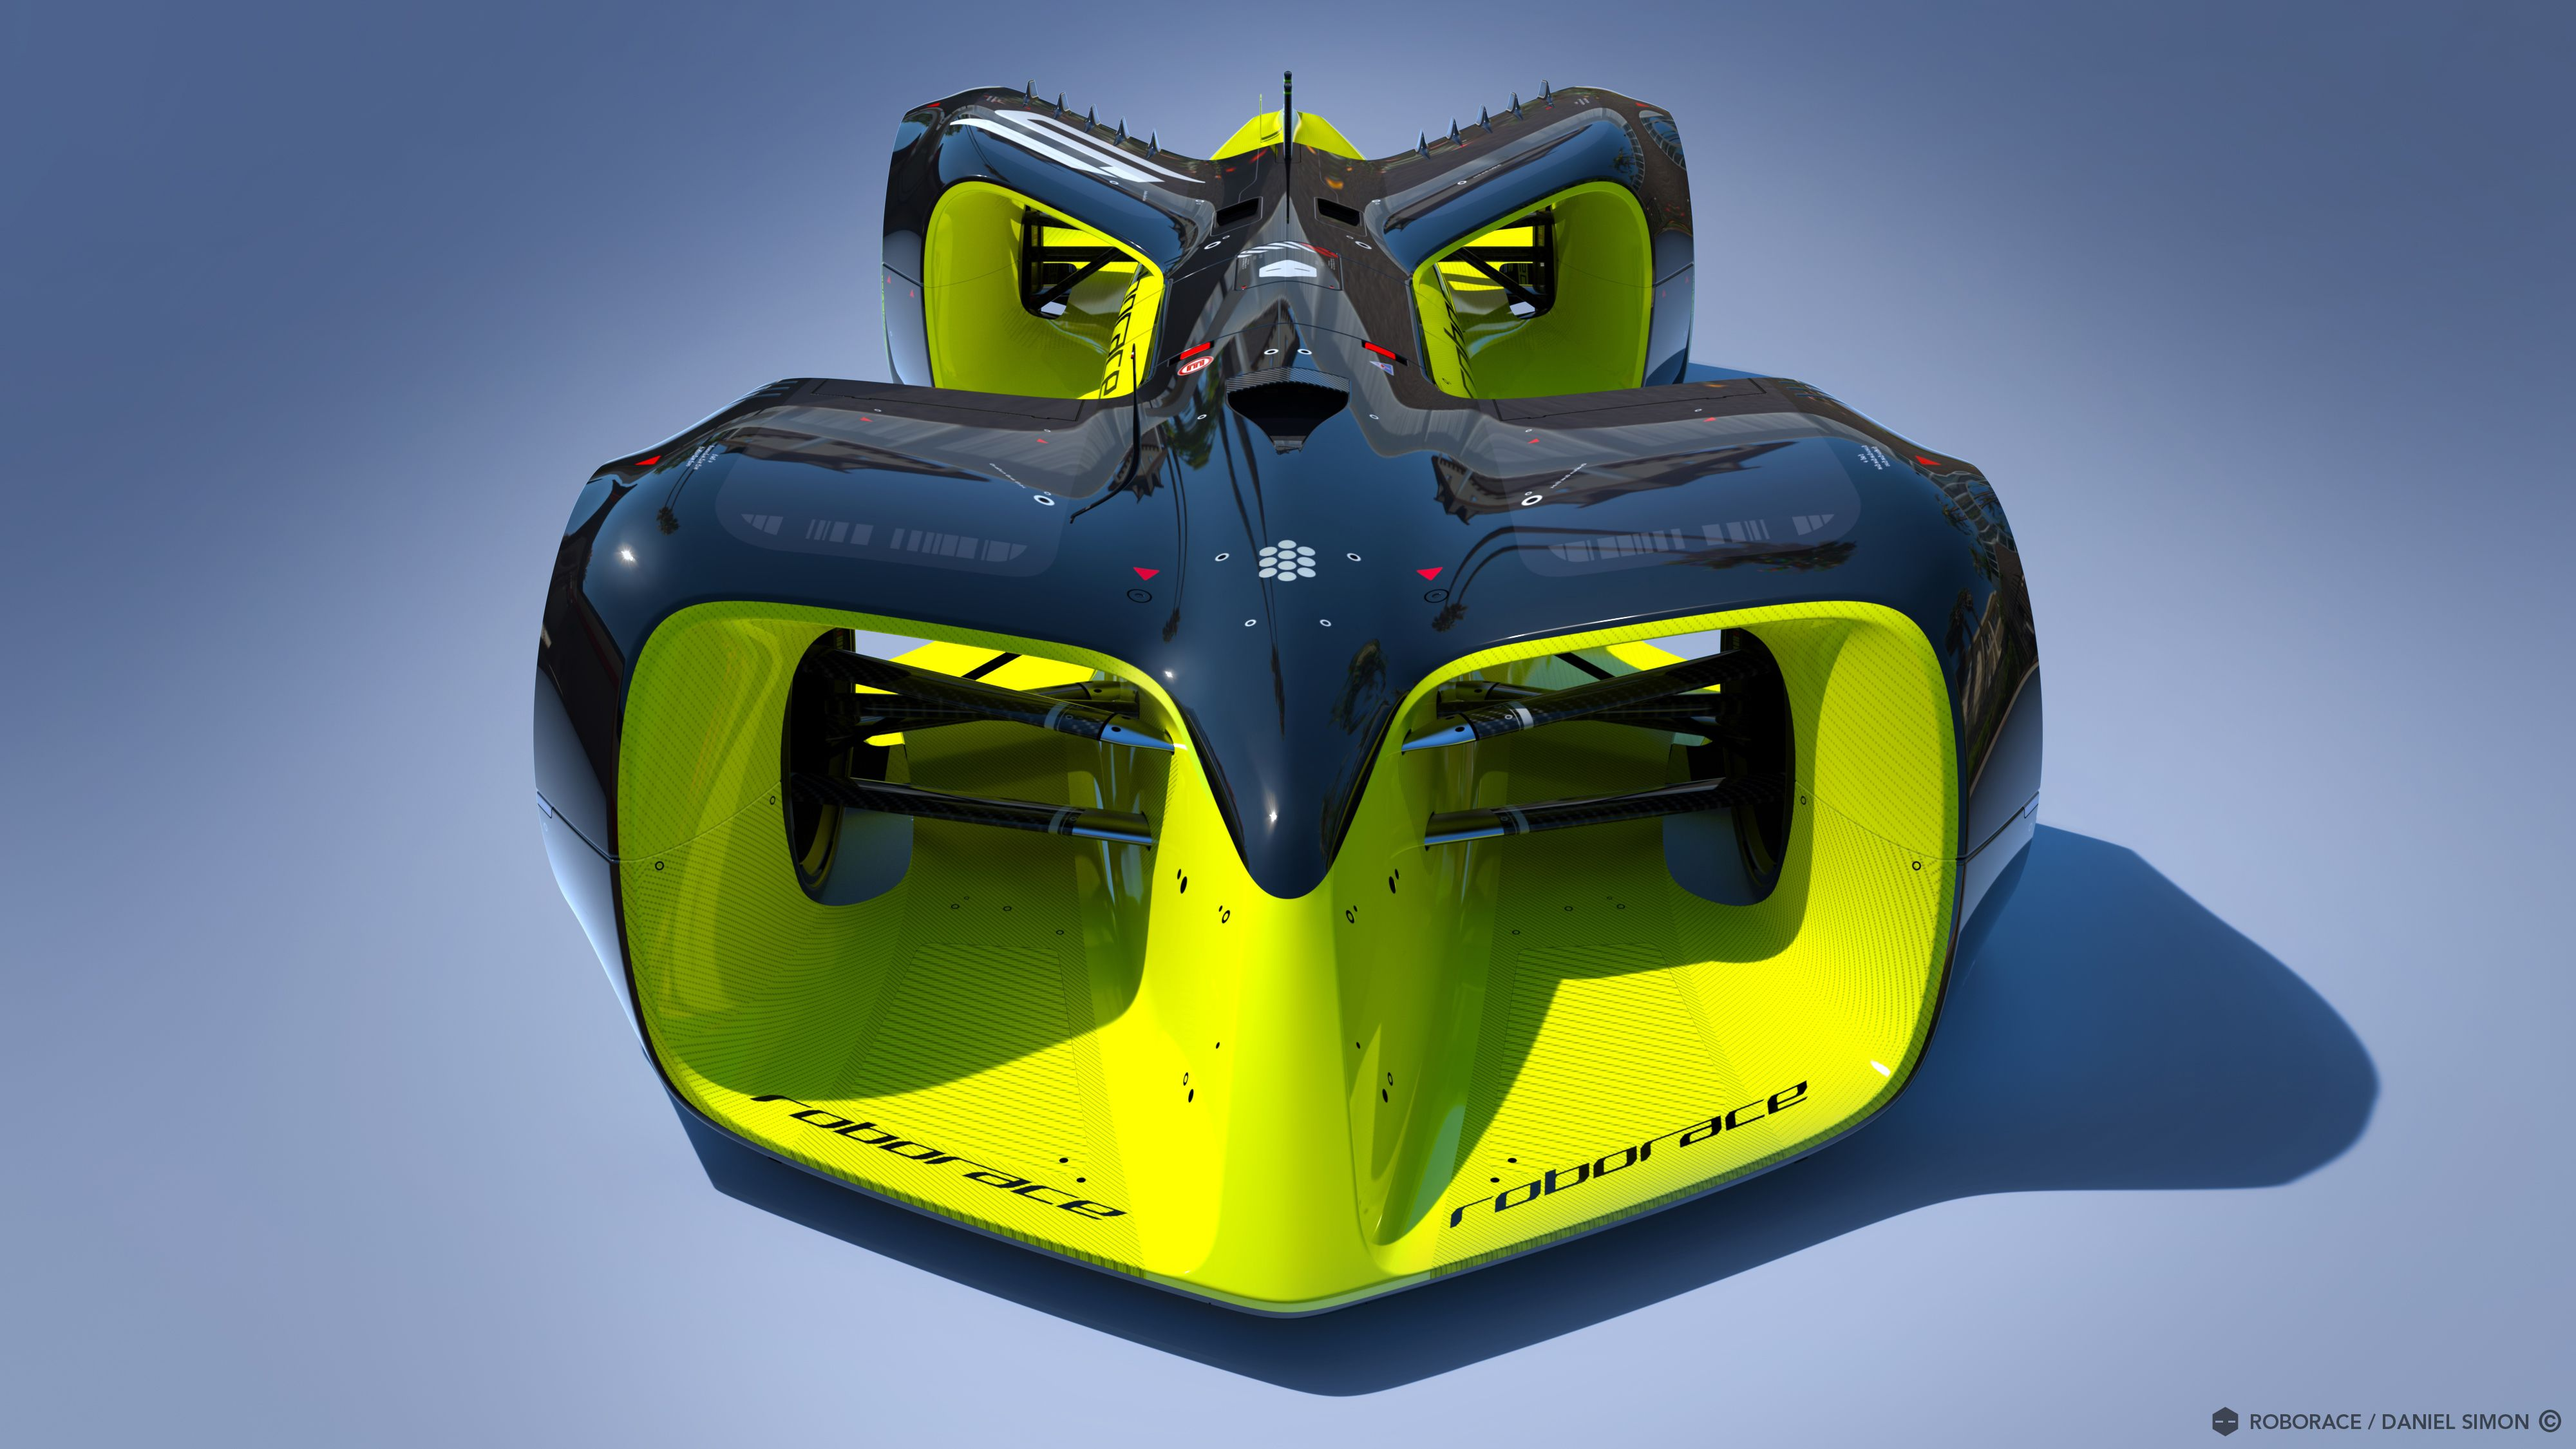 These are the crazy futuristic cars of Roborace, the world's